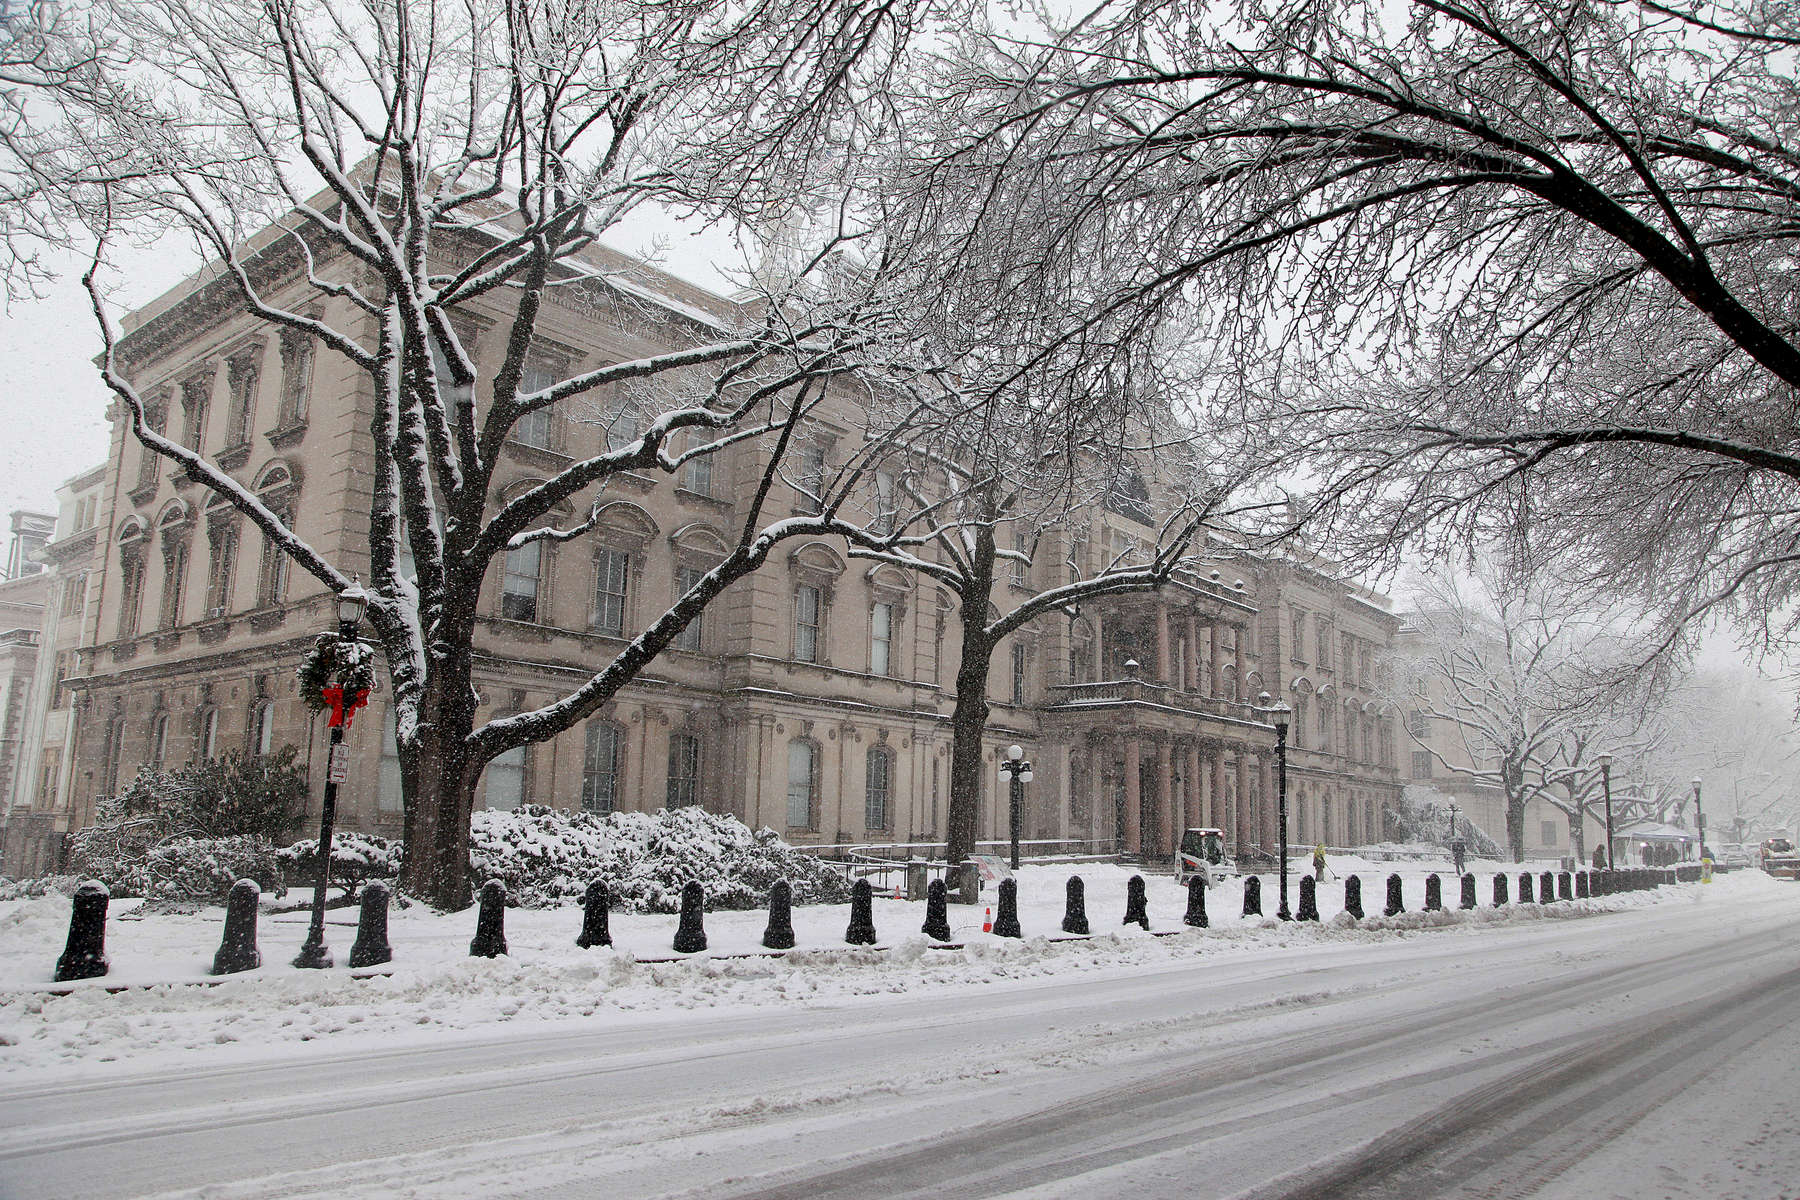 Heavy Snow falls on the State House in Trenton, New Jersey on Monday morning as documents pertaining to government subpoenas involving the {quote}Bridgegate{quote} Scandal were due to be submitted lawmakers investigating the lane closures on the George Washington Bridge were due by the end of the day.